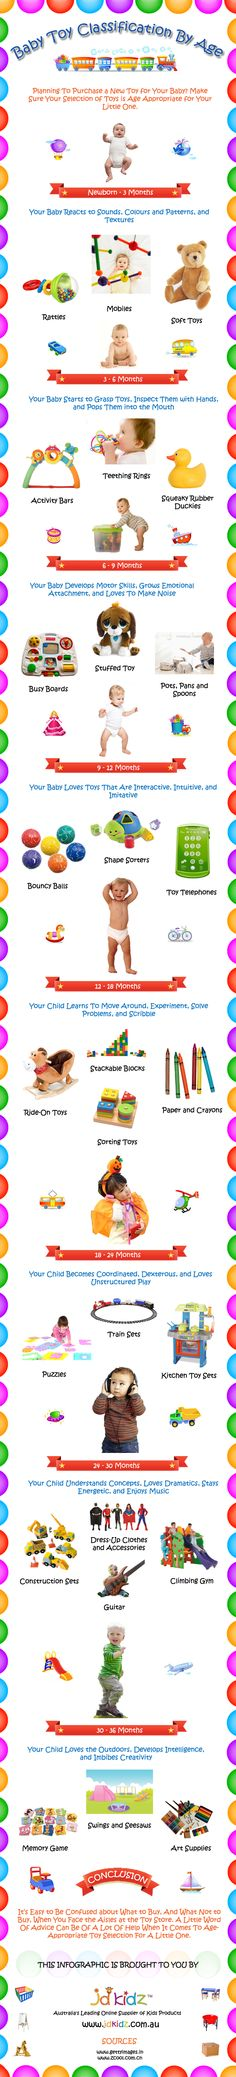 Baby Toy Classification By Age